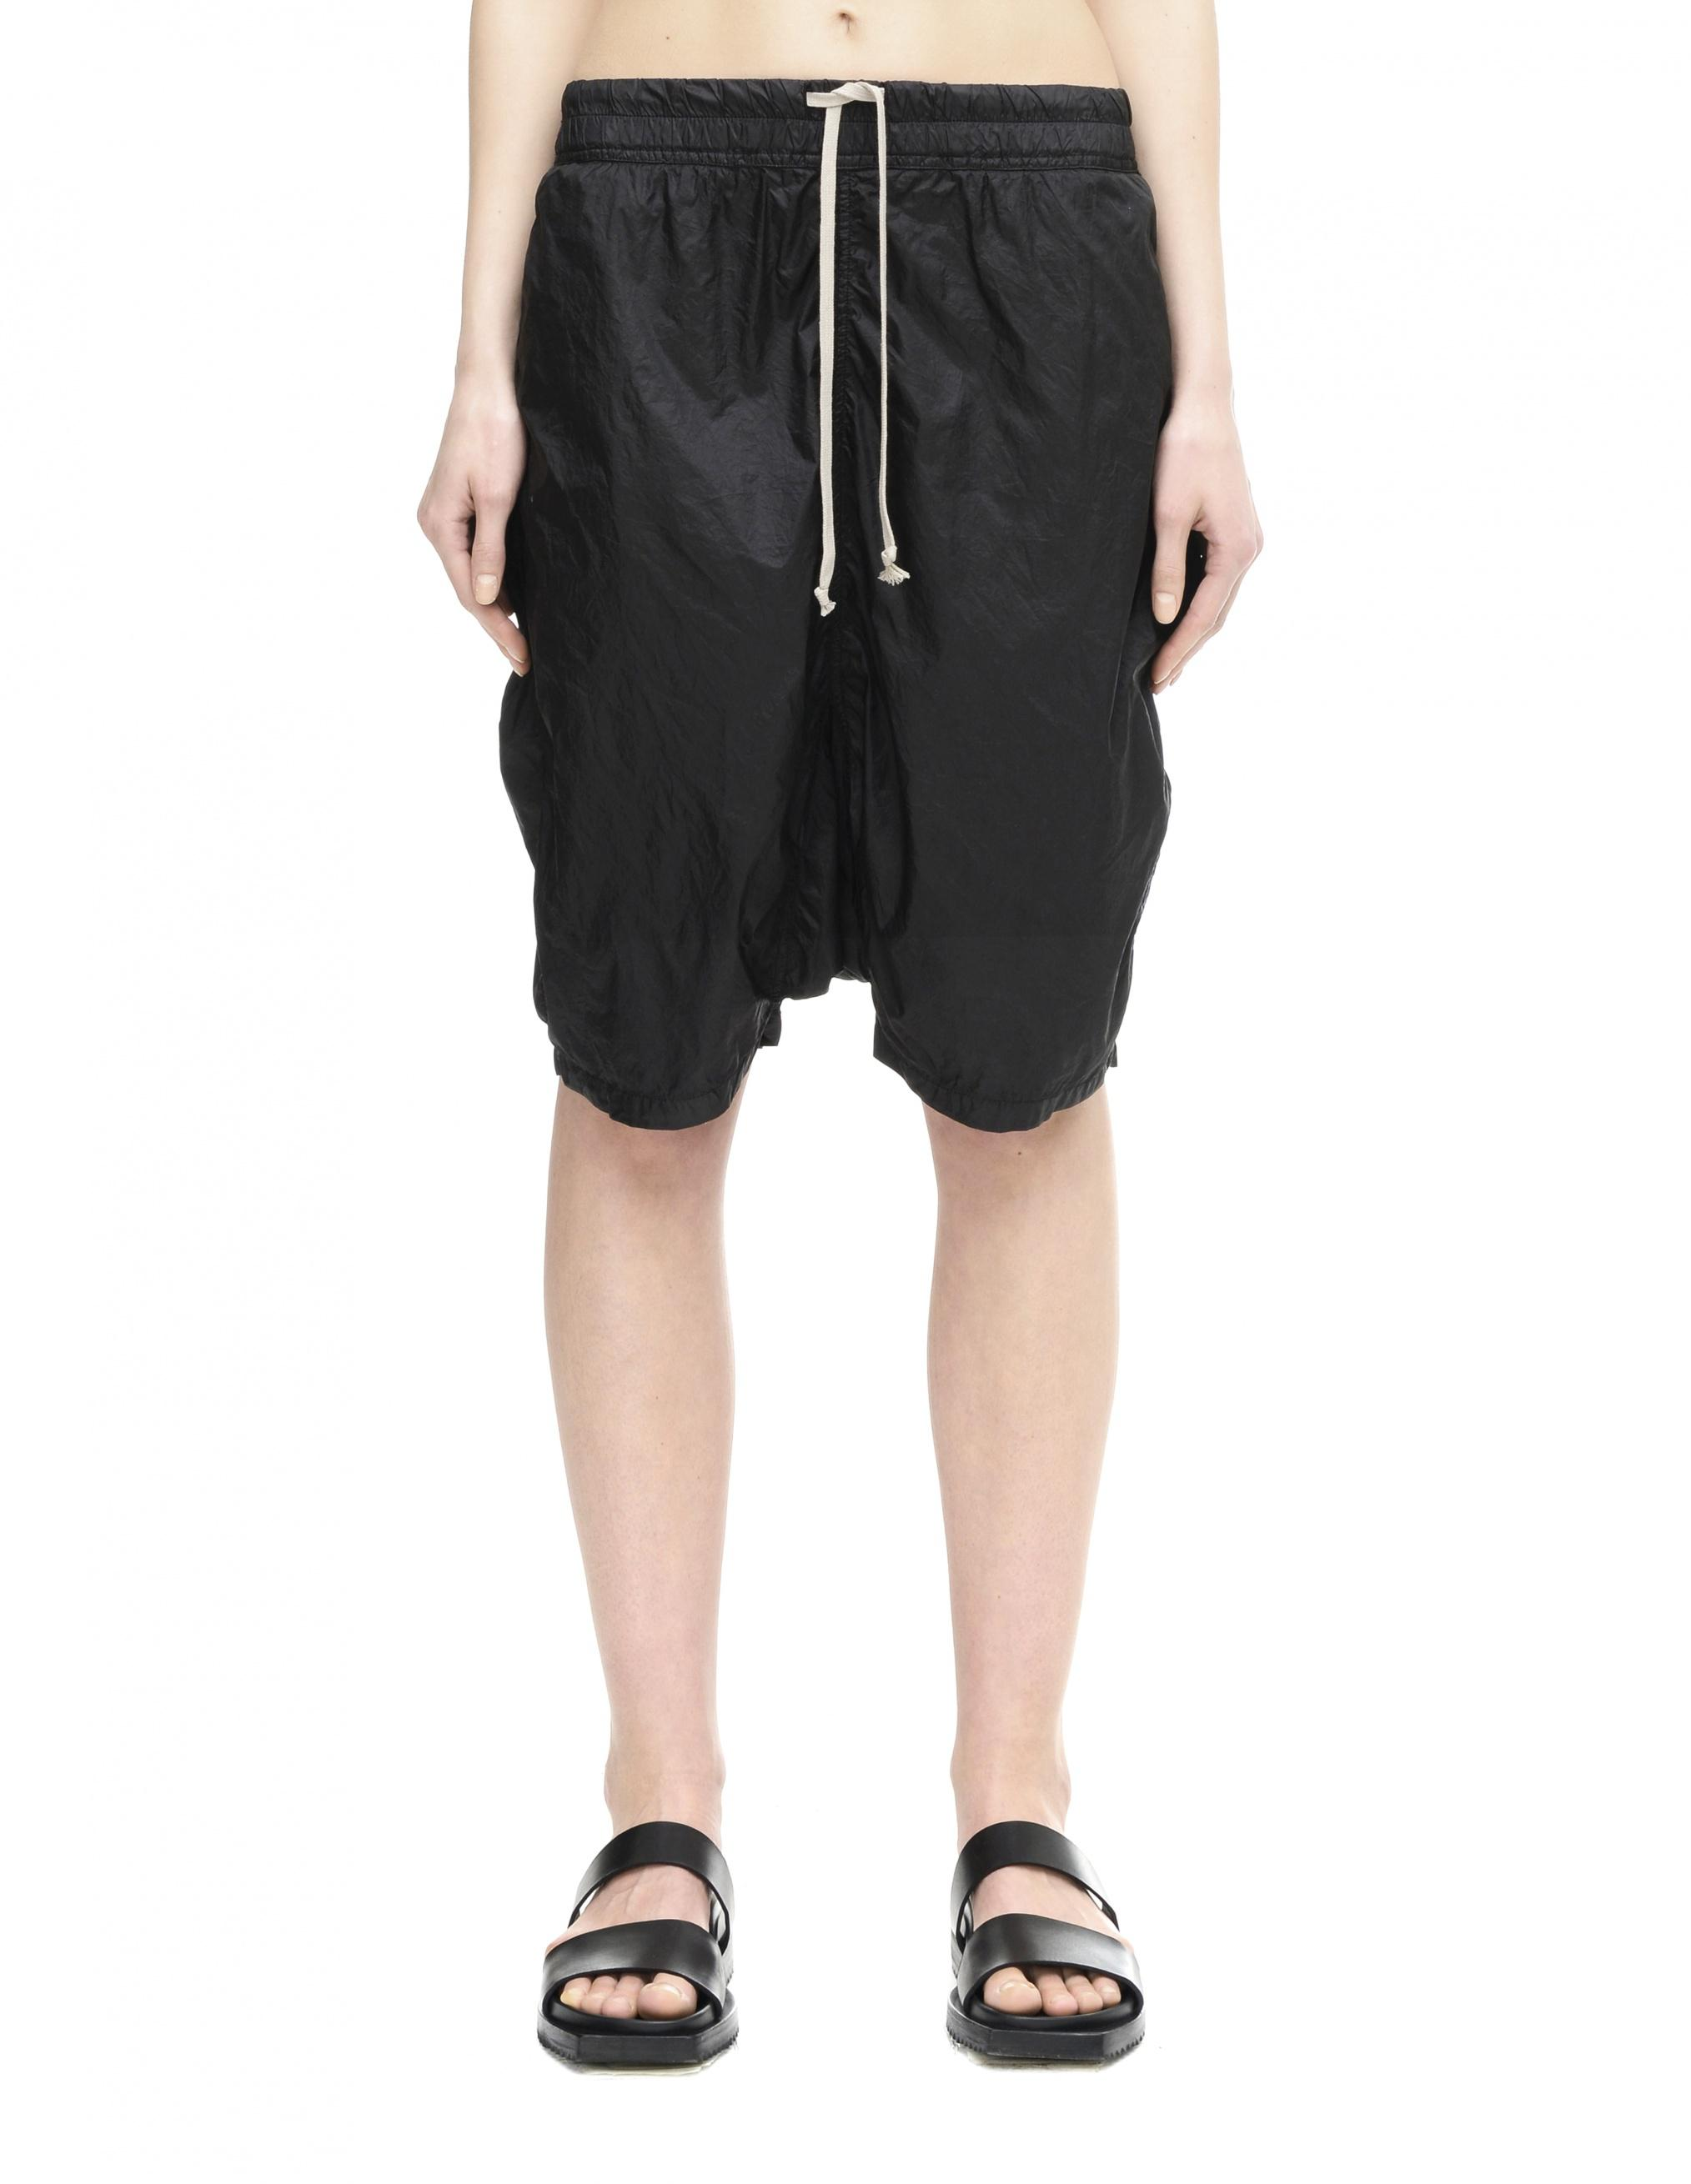 fb6180af90 Rick Owens Drkshdw Nylon Shorts in Black for Men - Lyst